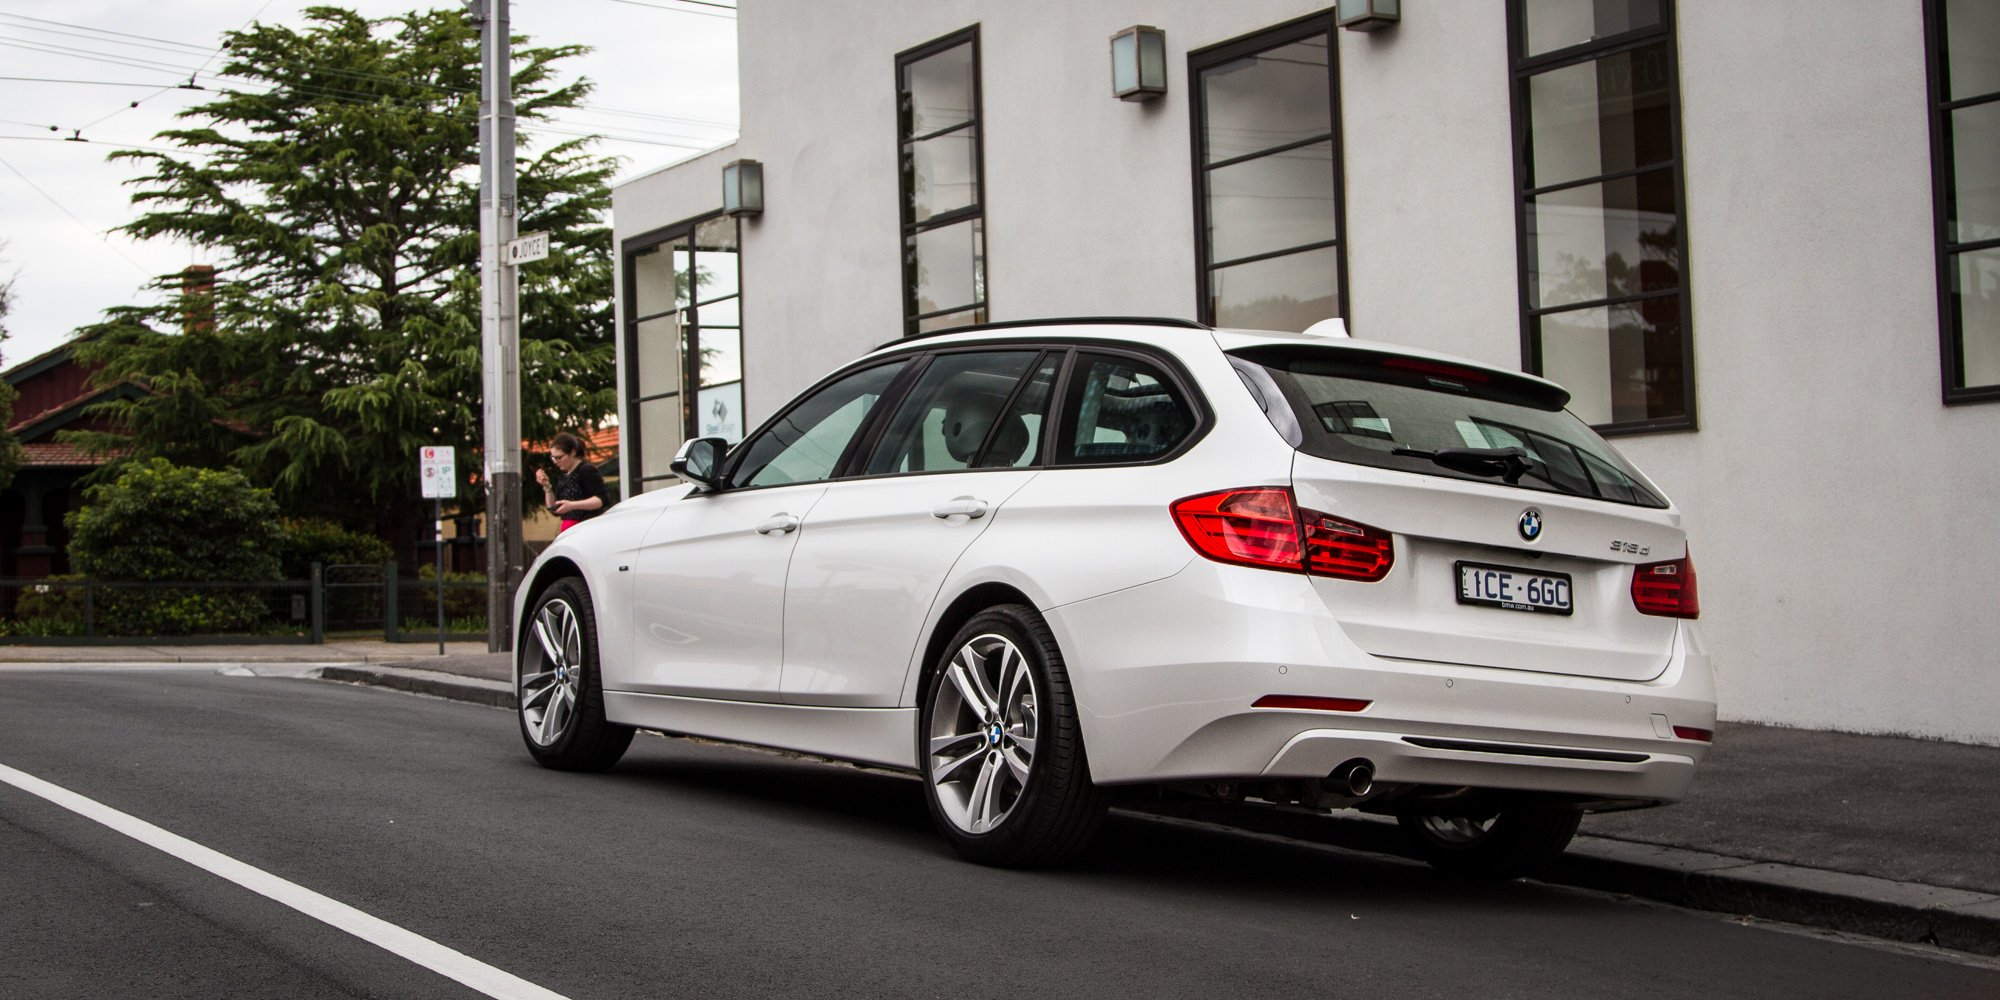 2015 Bmw 318d Touring Review Photos Caradvice